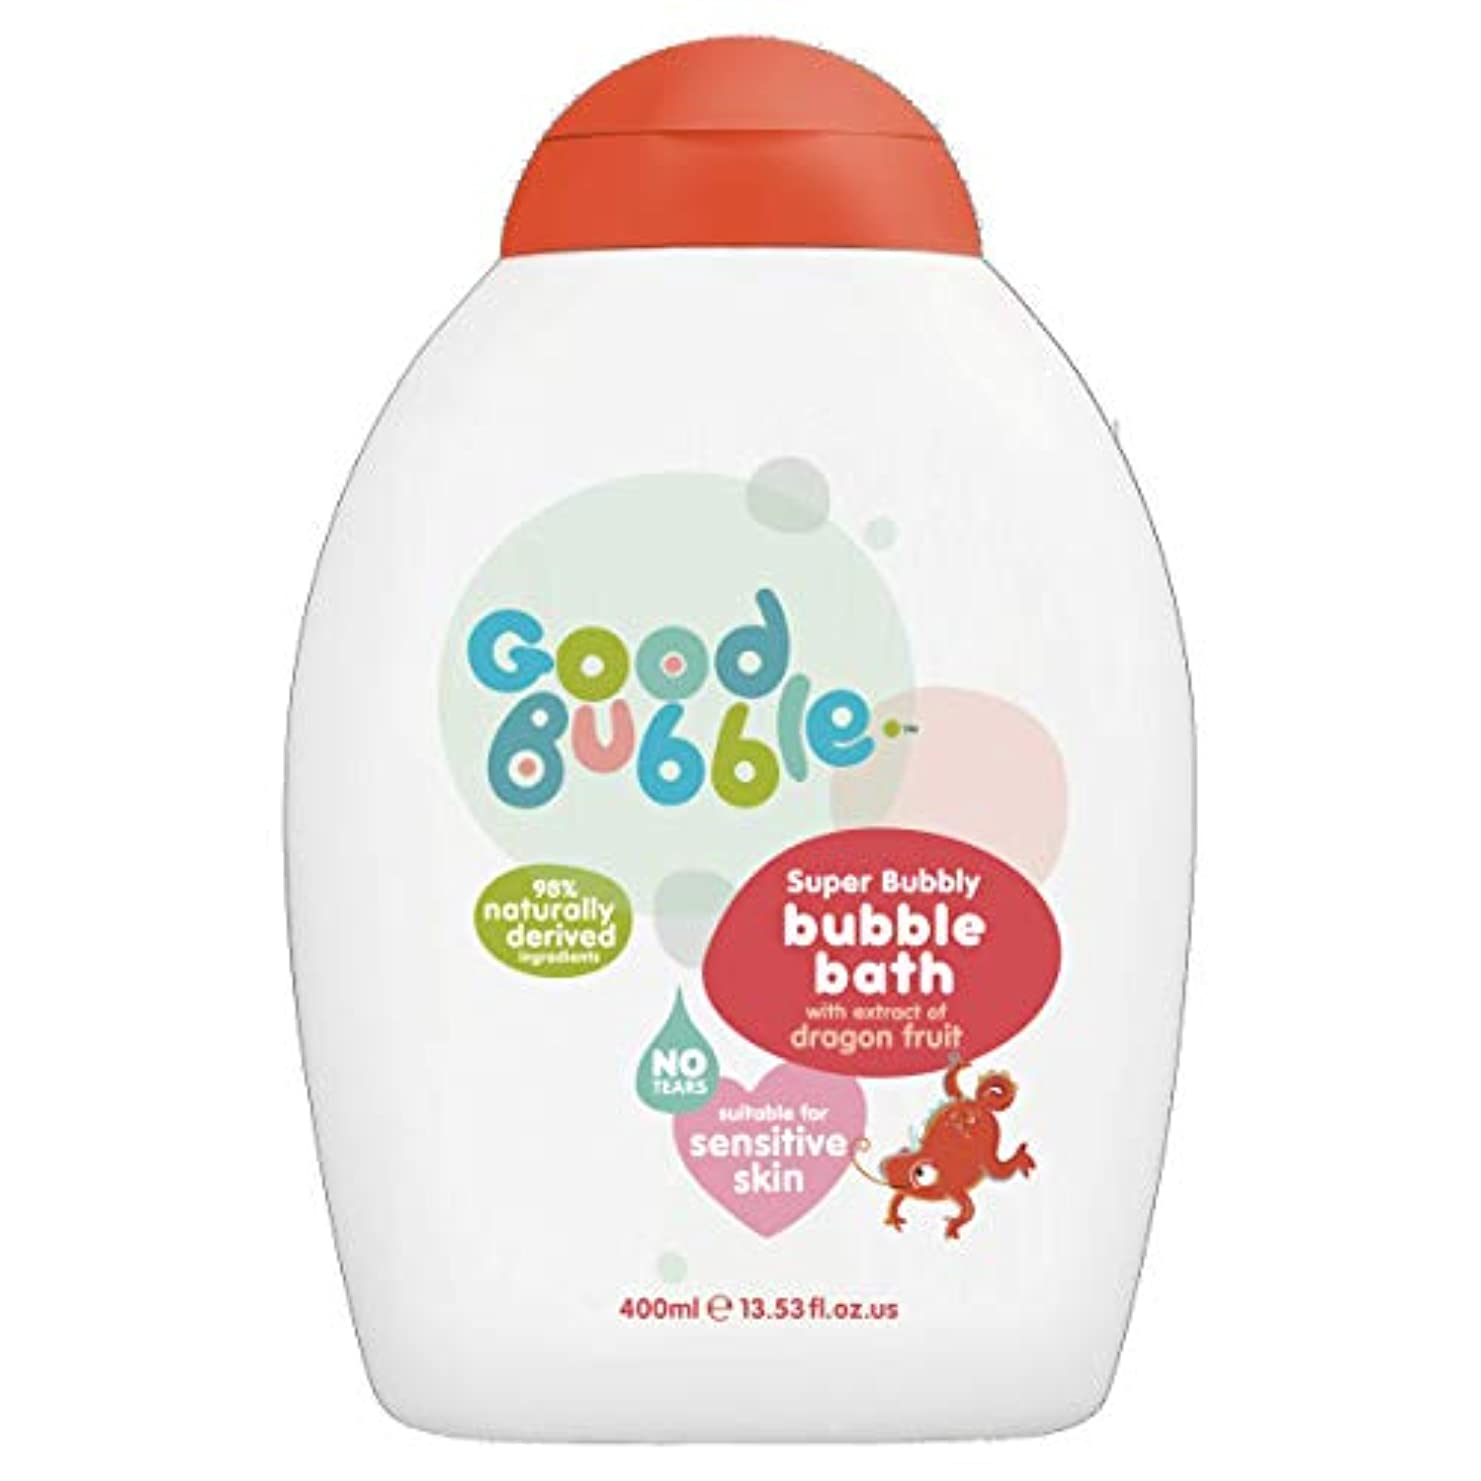 Good Bubble - Bubble Bath - Super Bubbly with Dragon Fruit Extract - 400ml